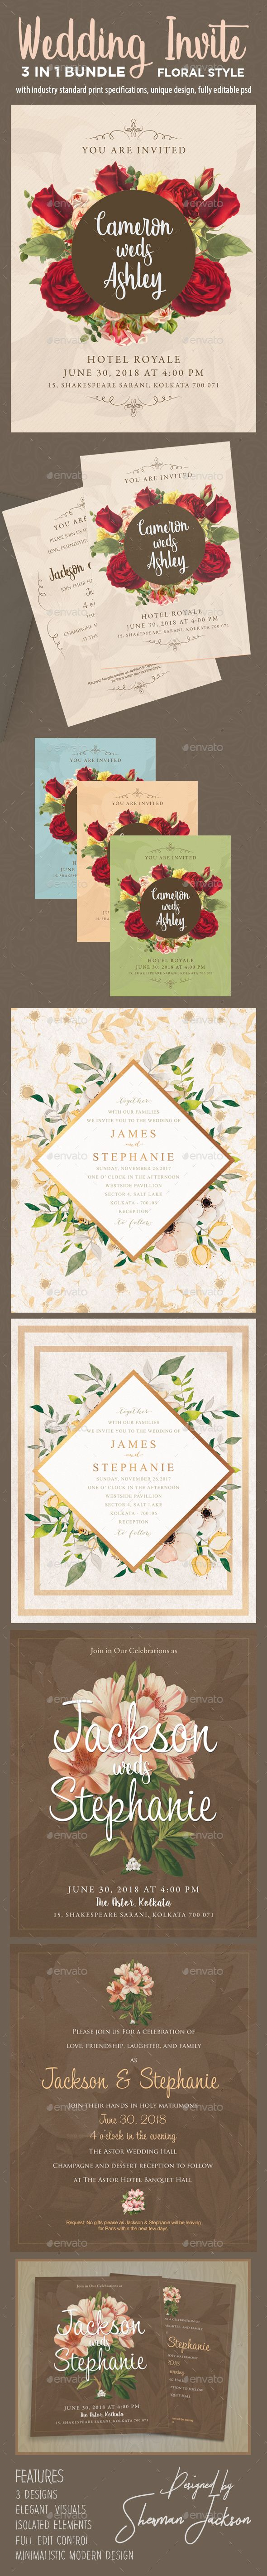 standard size wedding invitation%0A Floral Wedding Invitation Bundle